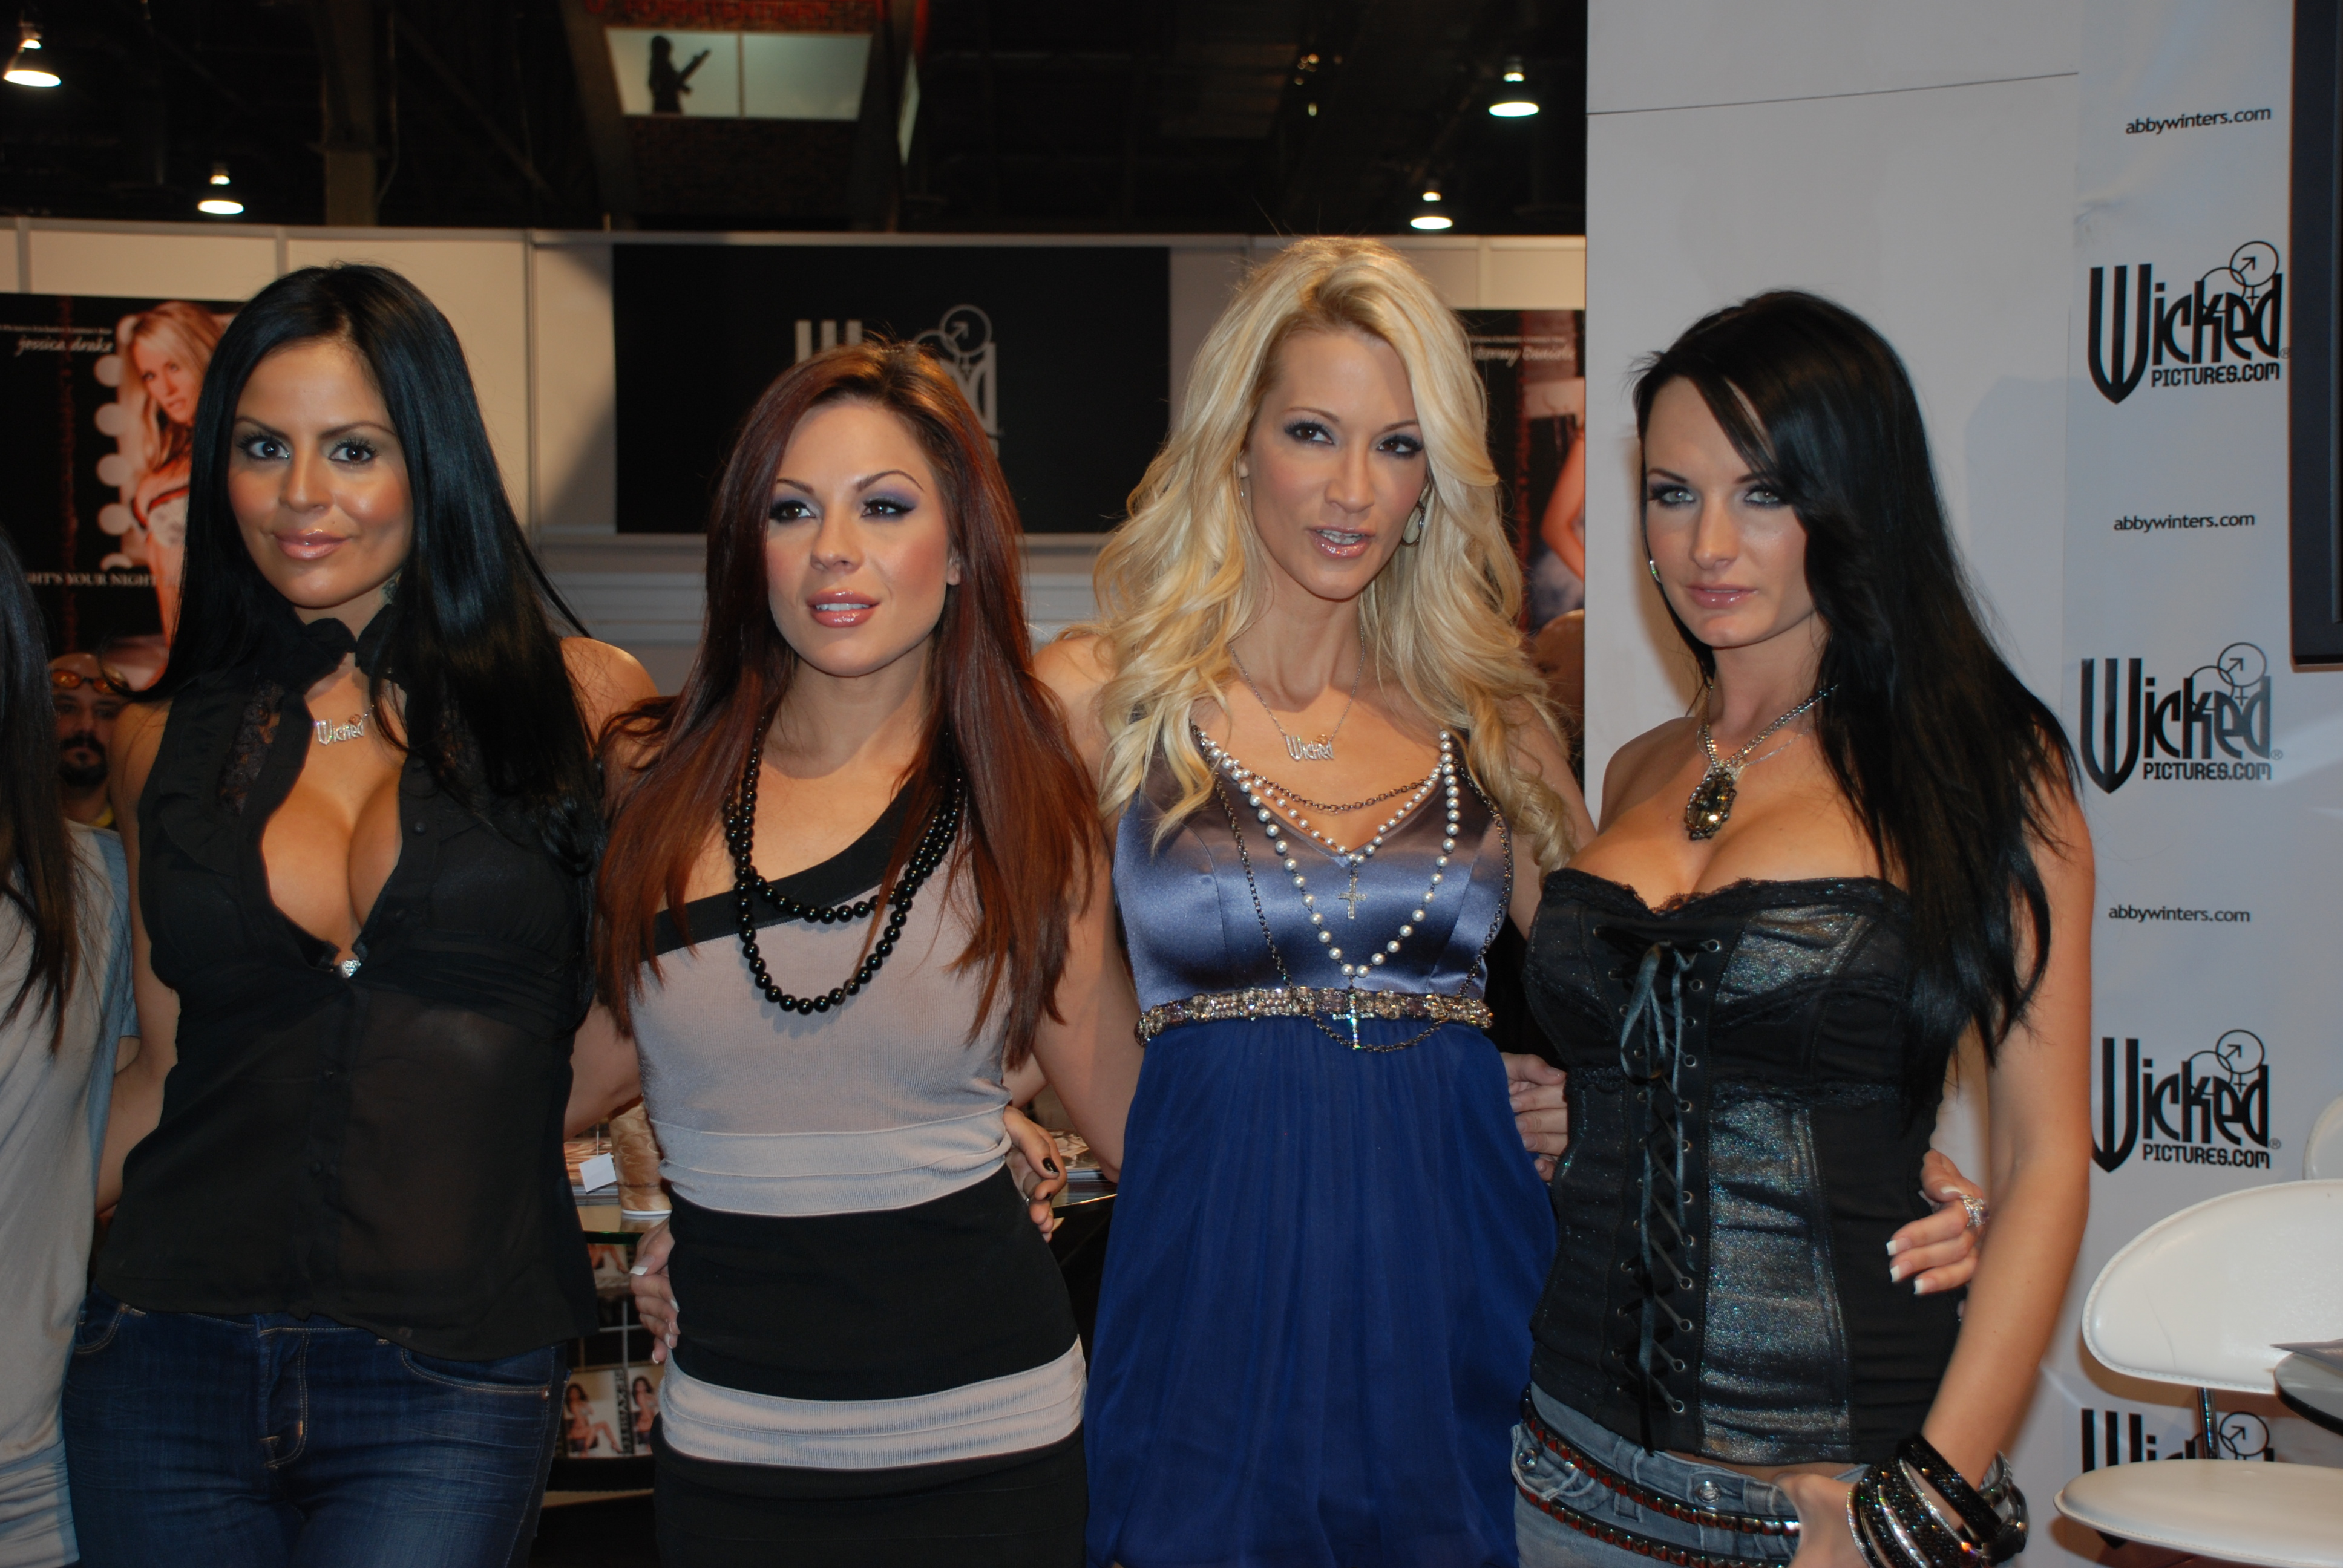 Filewicked Girls At Avn Adult Entertainment Expo 2009 1 Jpg